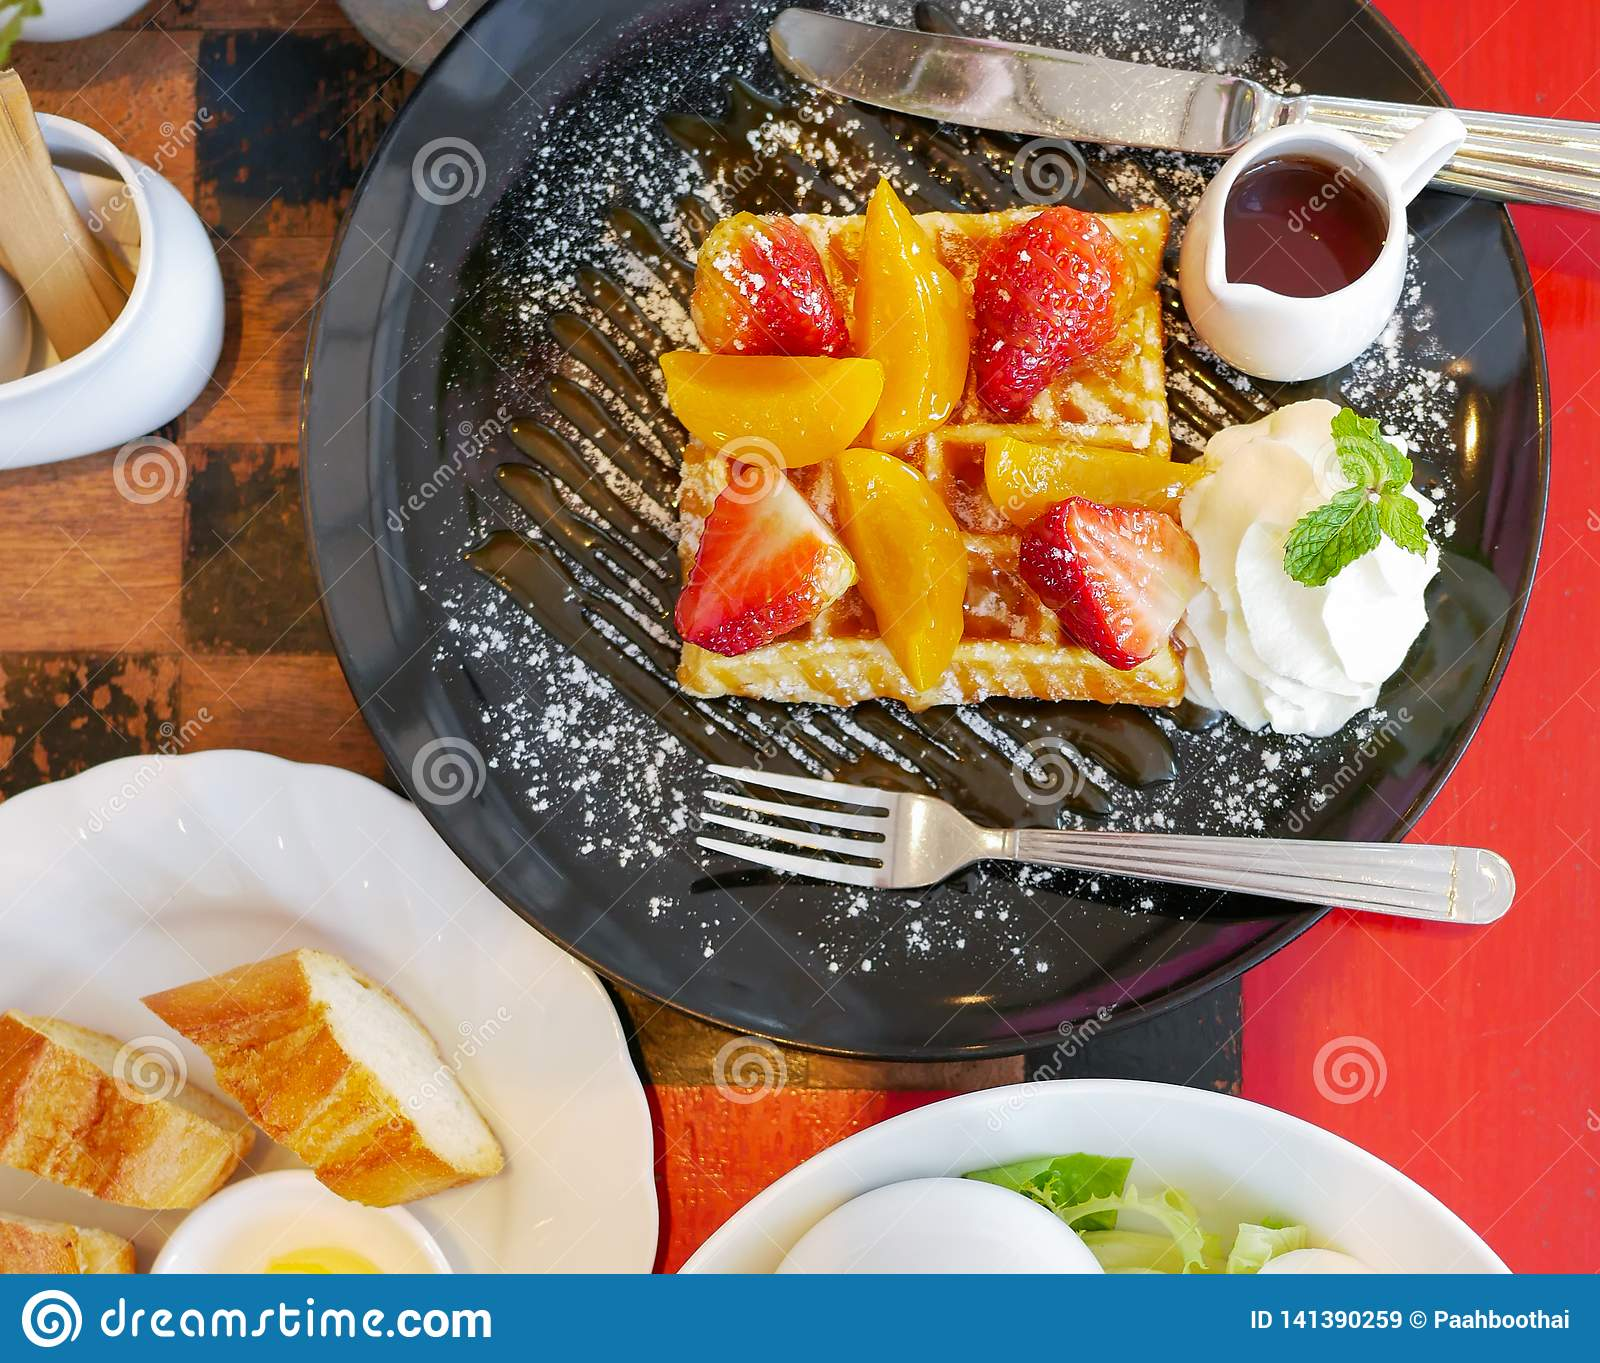 Top view of honey waffle with strawberry and peach and icing sprinkle in black plate on red table background